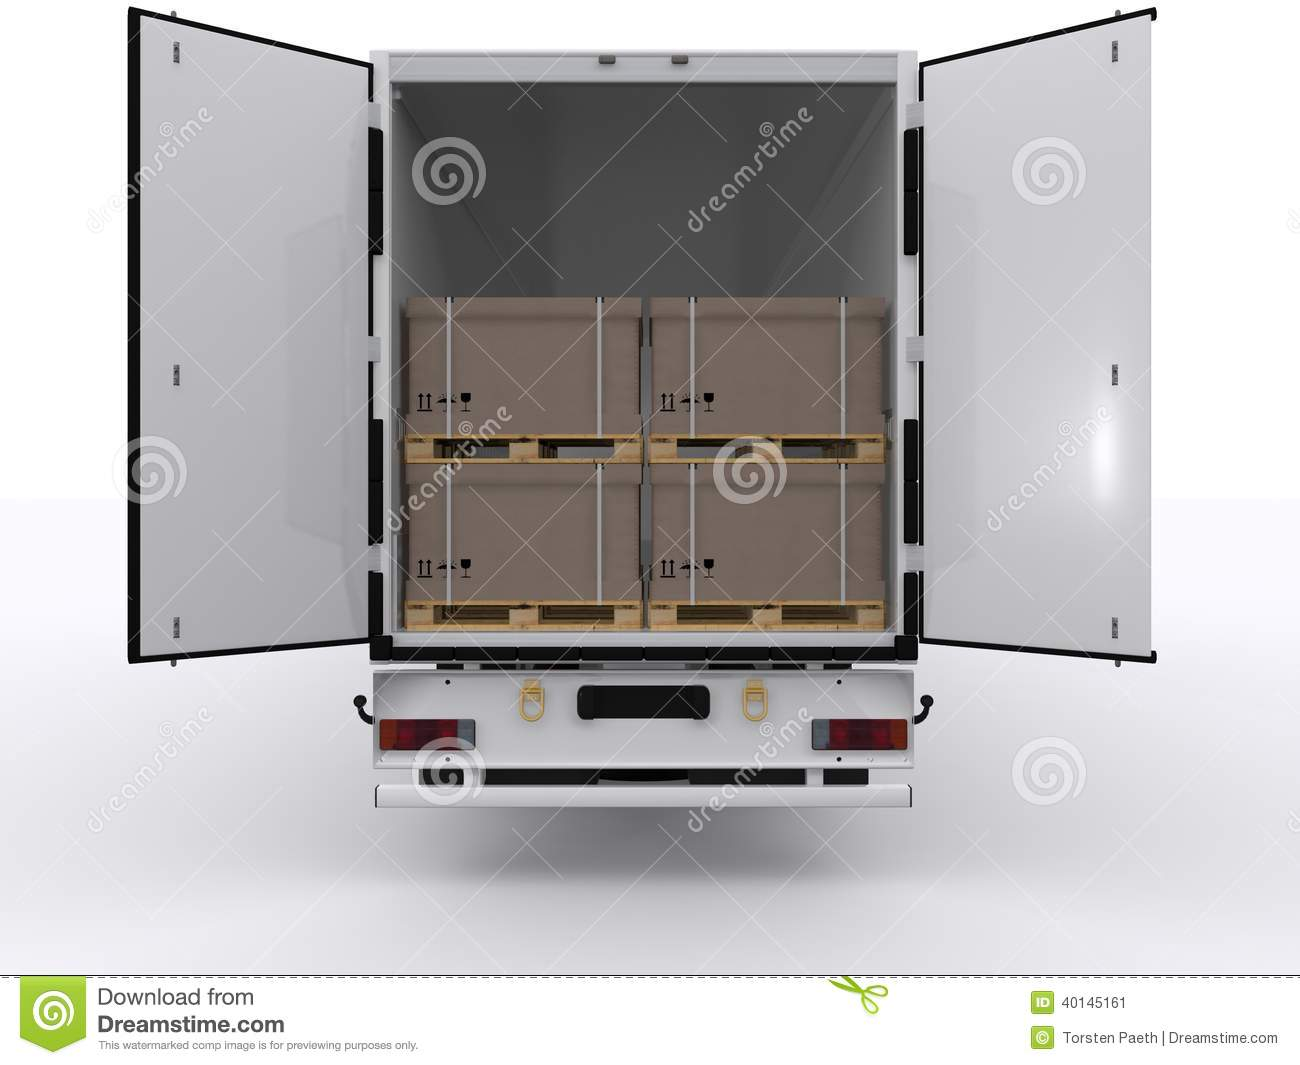 Semi Truck Seats >> Truck with open trailer stock image. Image of traffic - 40145161